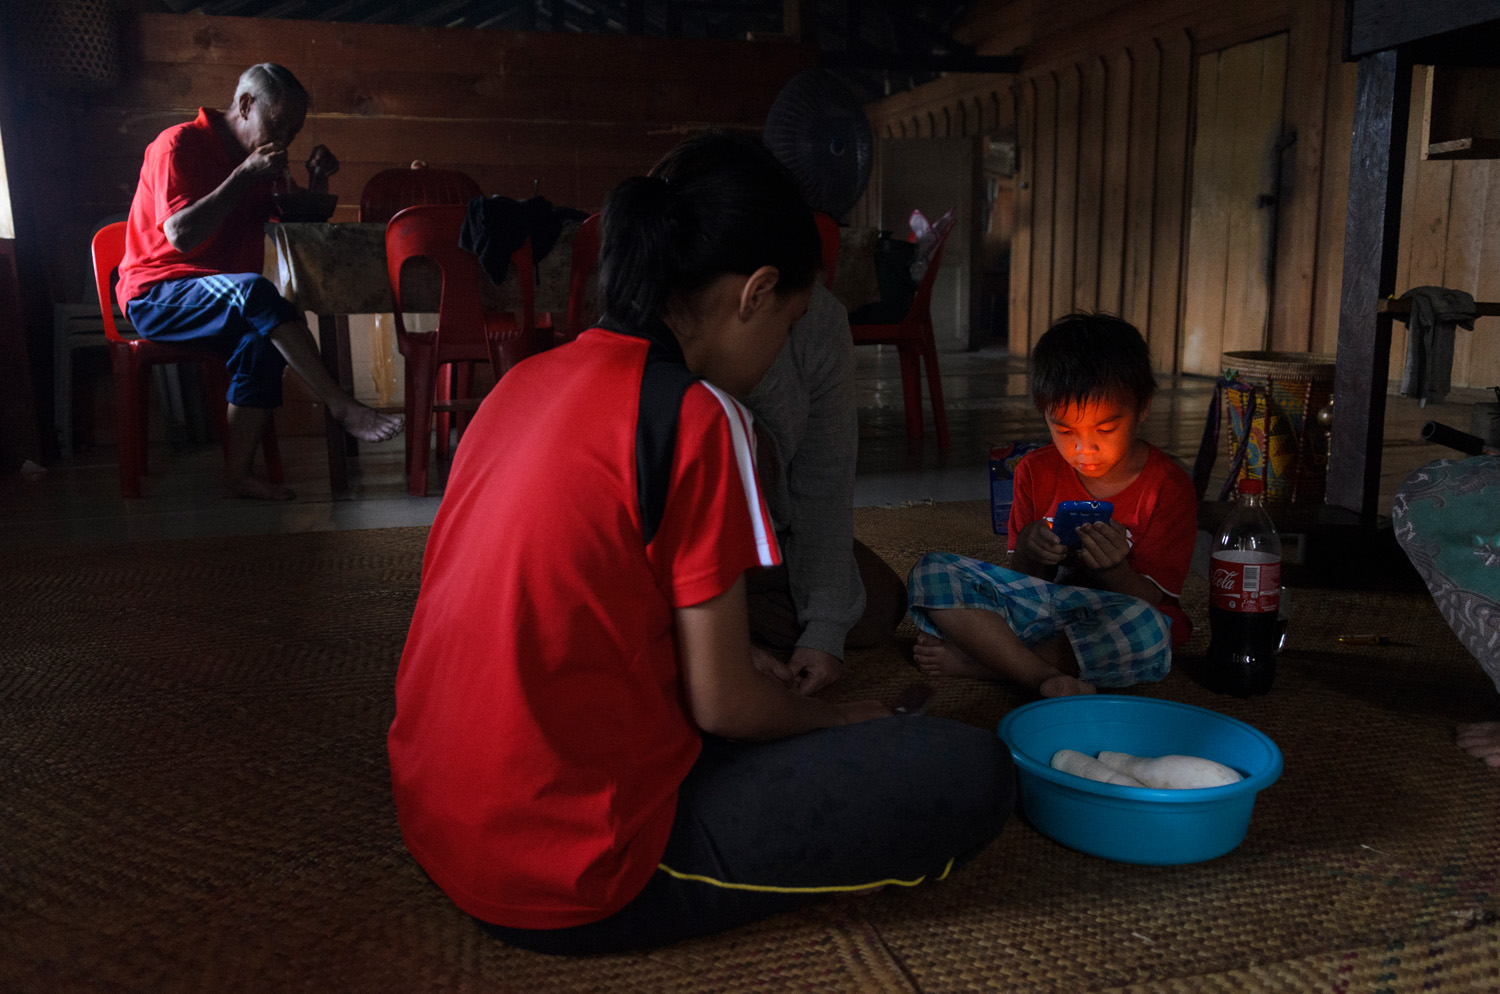 The Parill family tend to different activities in the great room of the Bario Asal longhouse: grandfather eating, mother and daughter cleaning food and young son playing games on a cell phone.